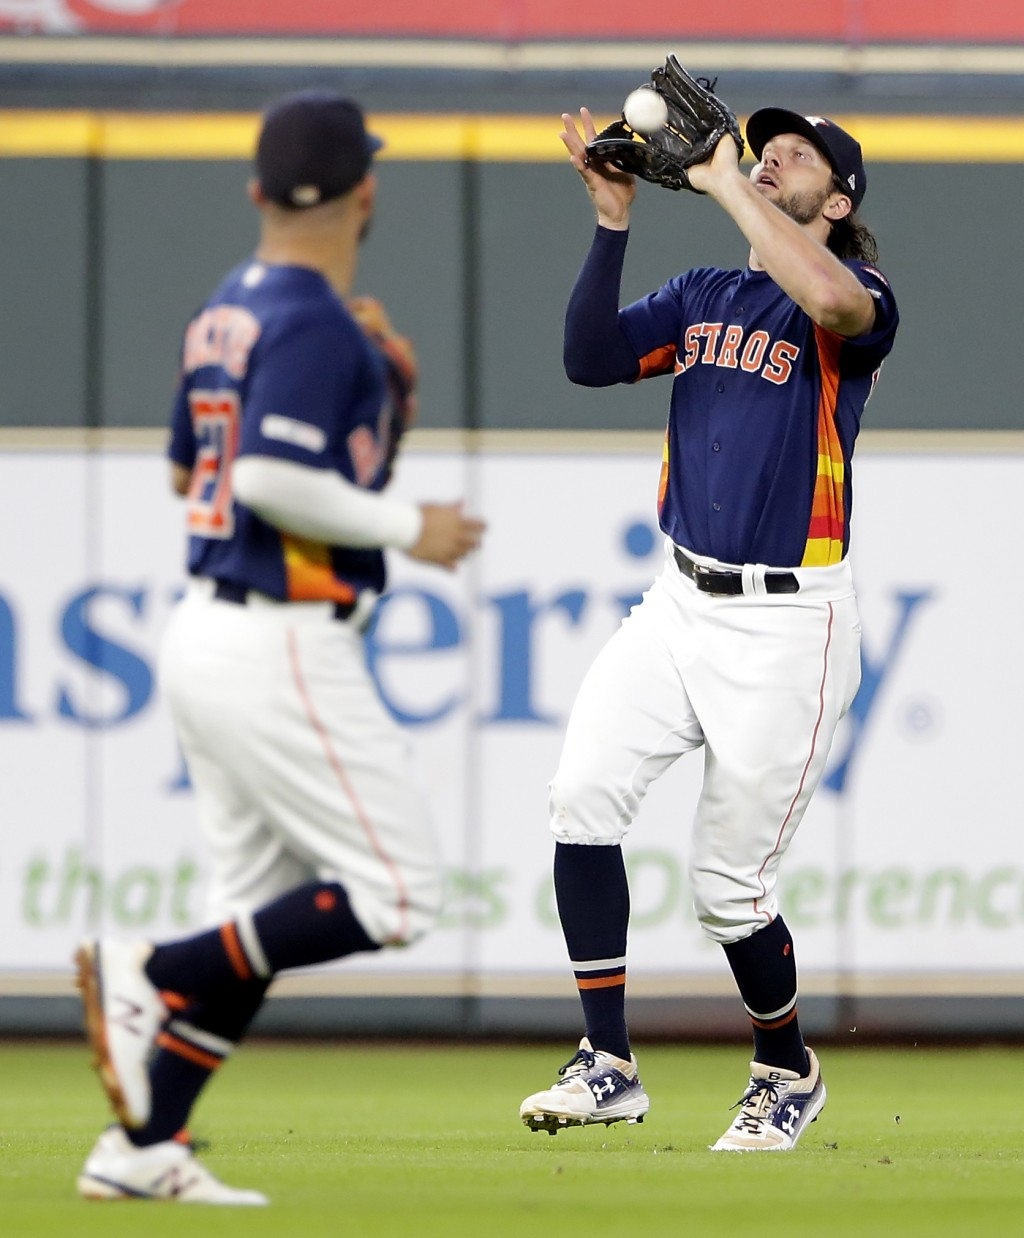 Houston Astros center fielder Jake Marisnick, right, makes the catch on a line drive by Seattle Mariners' Mallex Smith as Jose Altuve, left, looks on